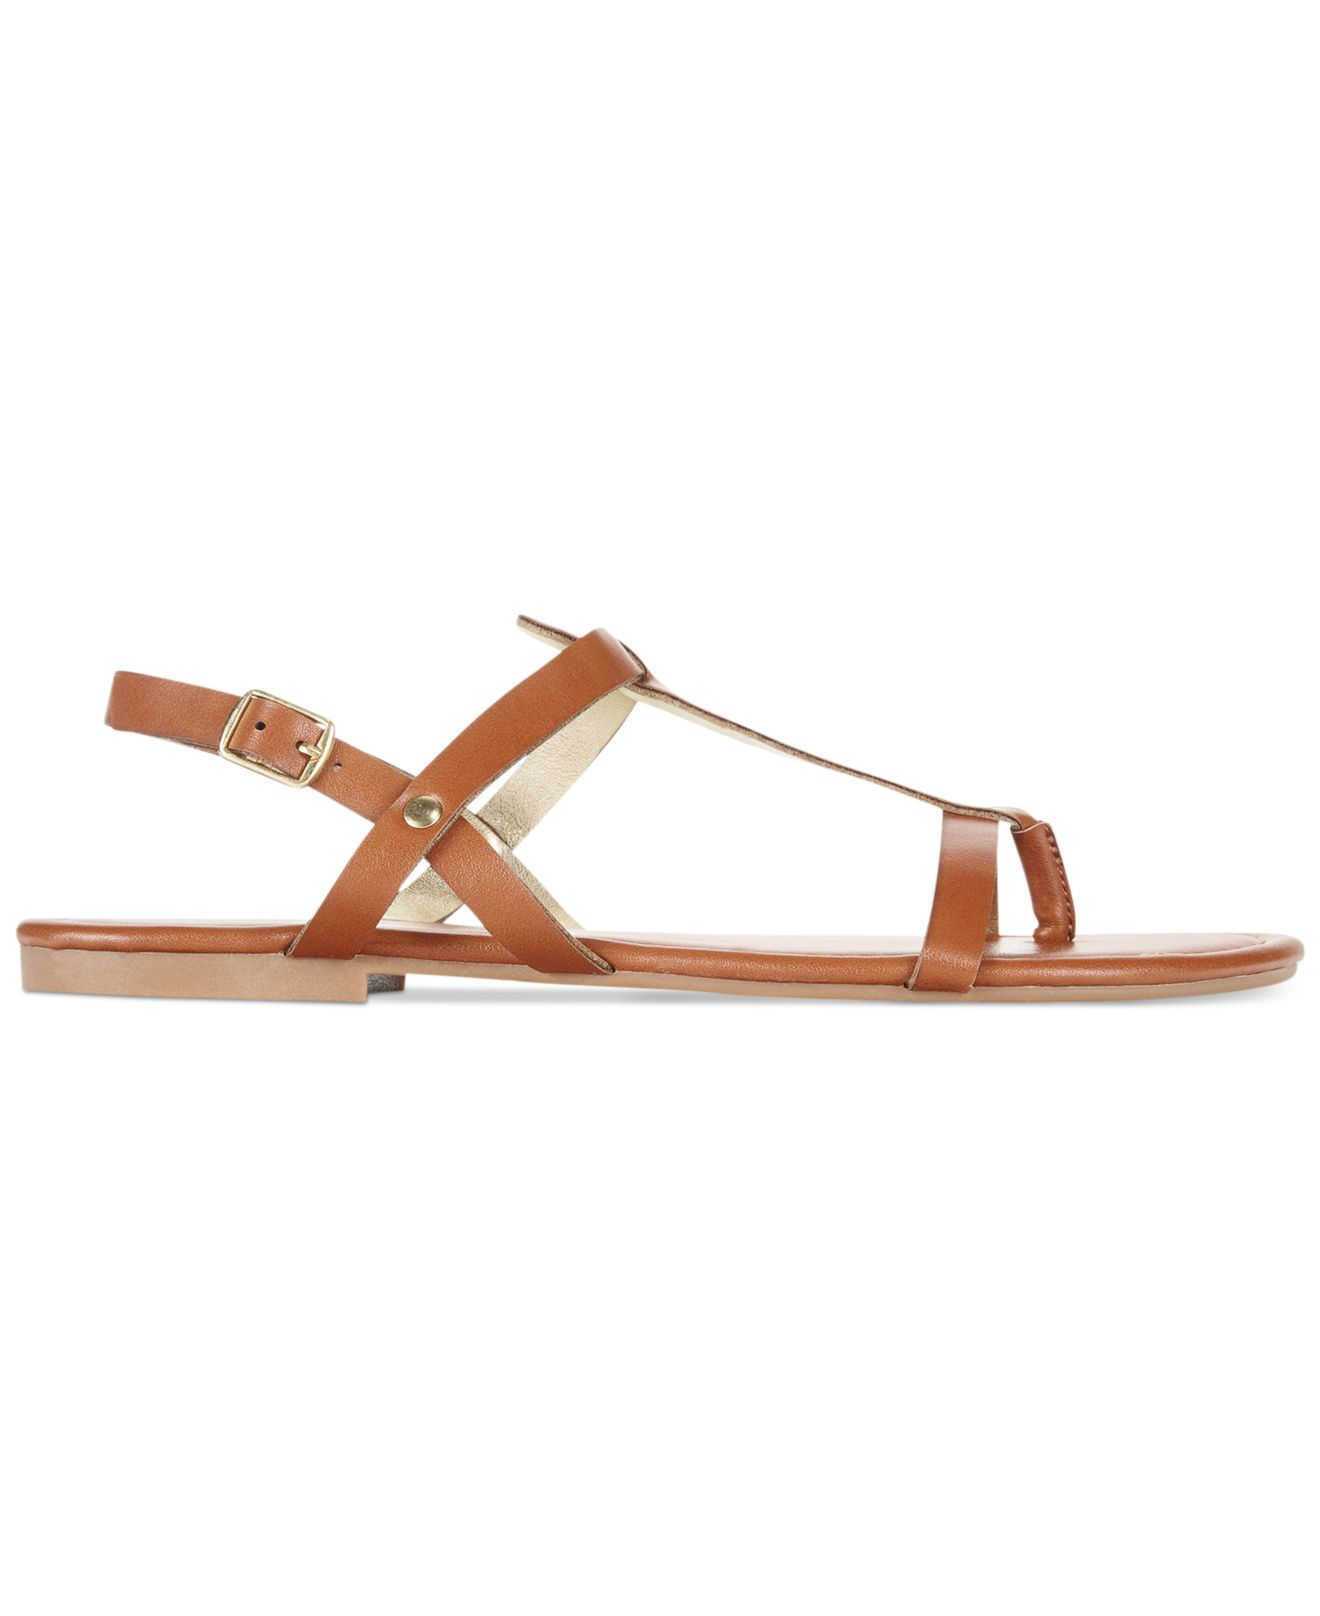 a21e89252c00e Lyst - Rampage 143 Girl Radko Flat Thong Sandals in Brown